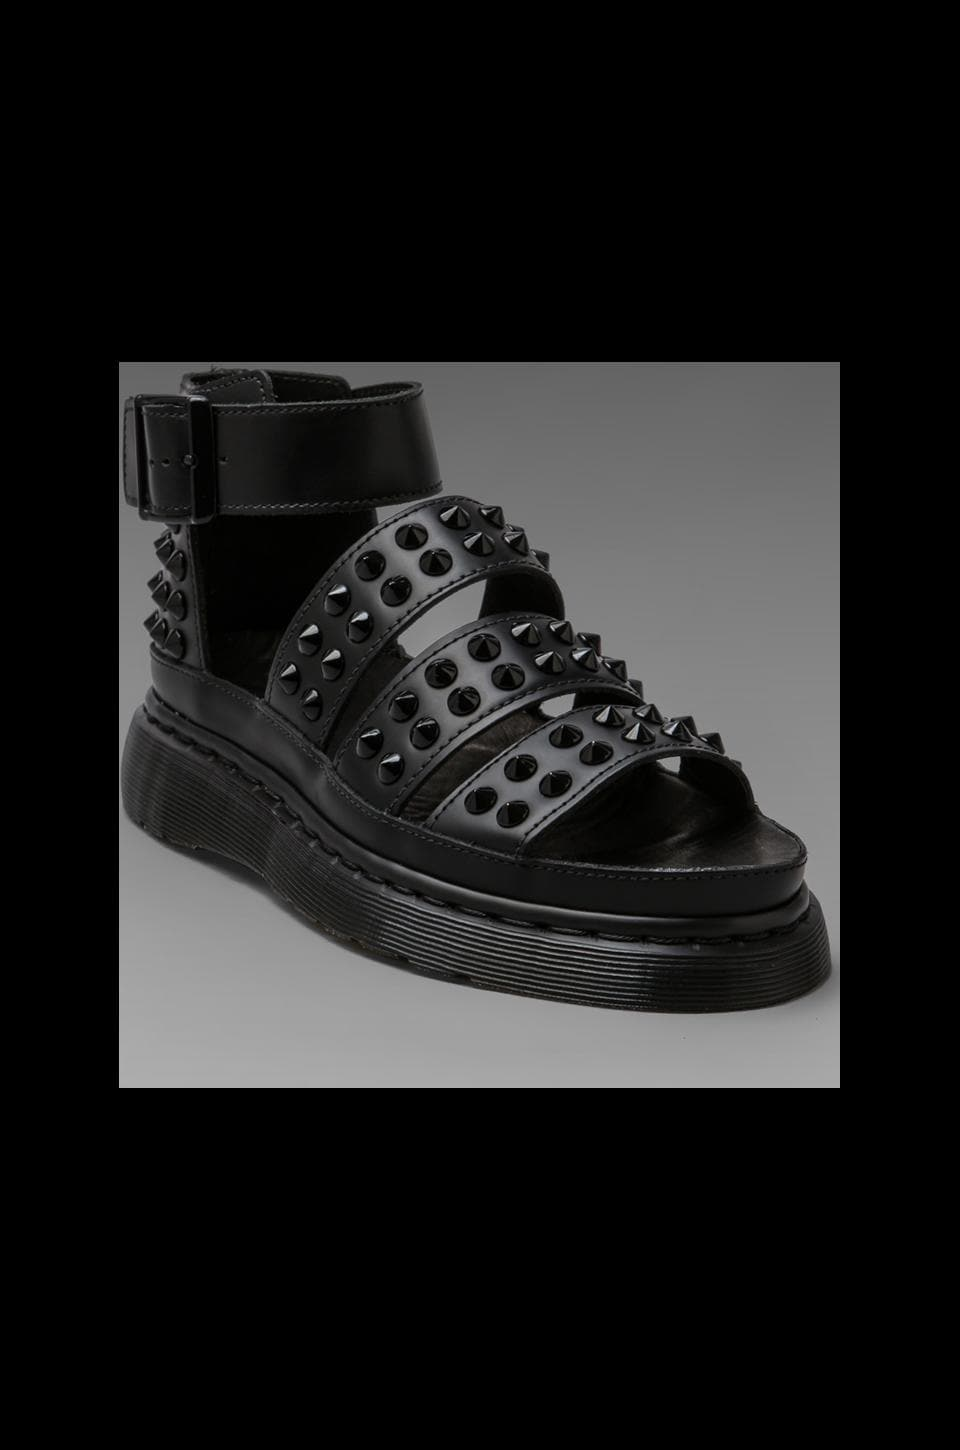 Dr. Martens Liza Studded Sandal in Black